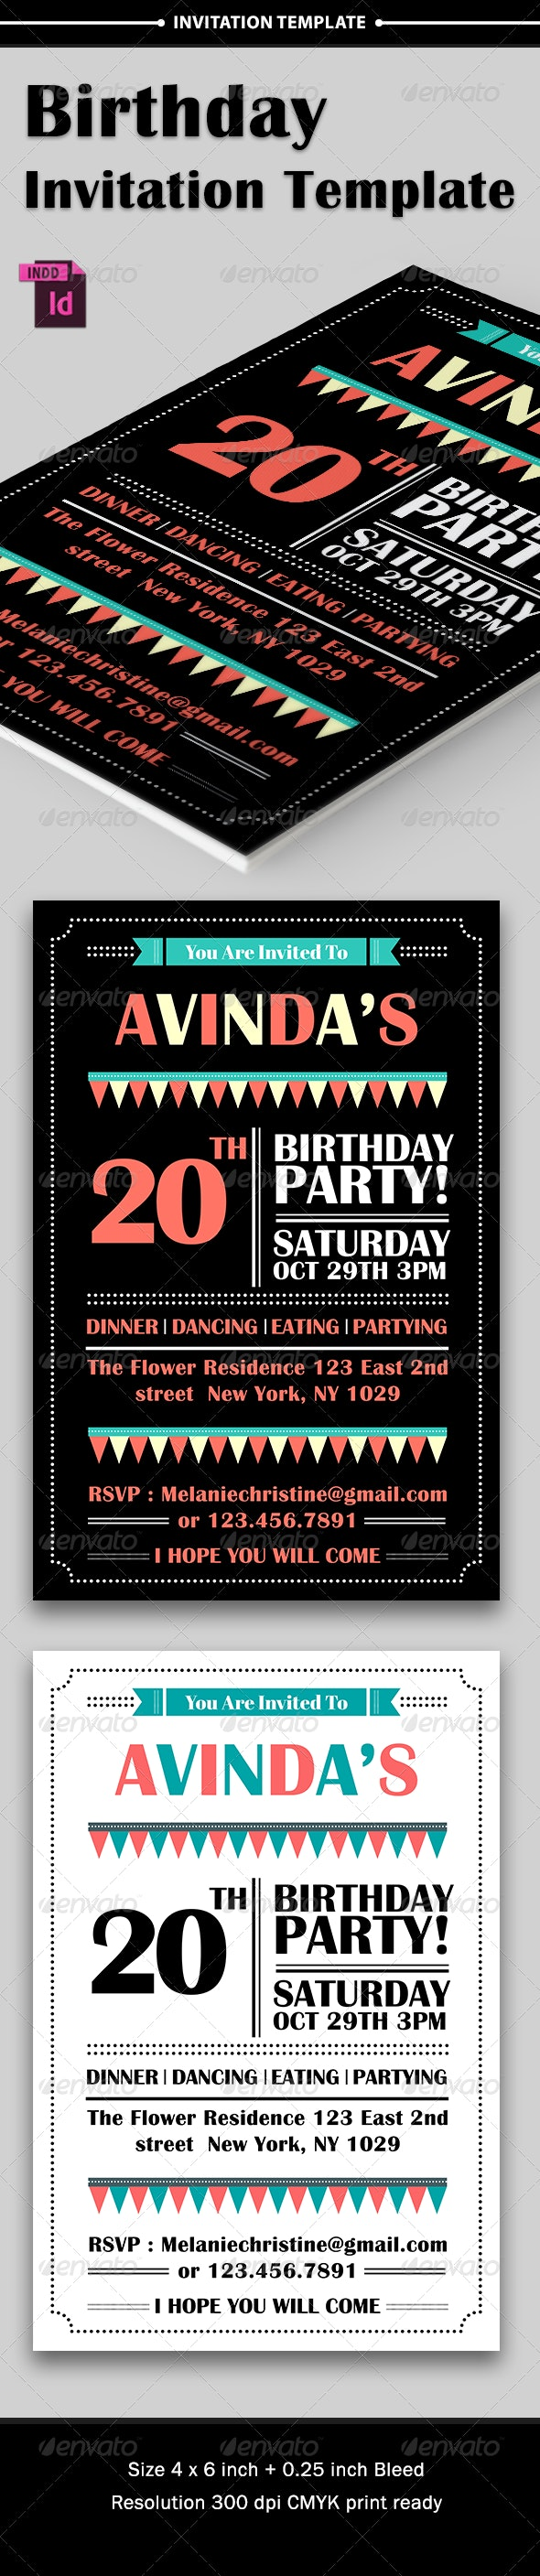 Birthday Party Invitation - Invitations Cards & Invites